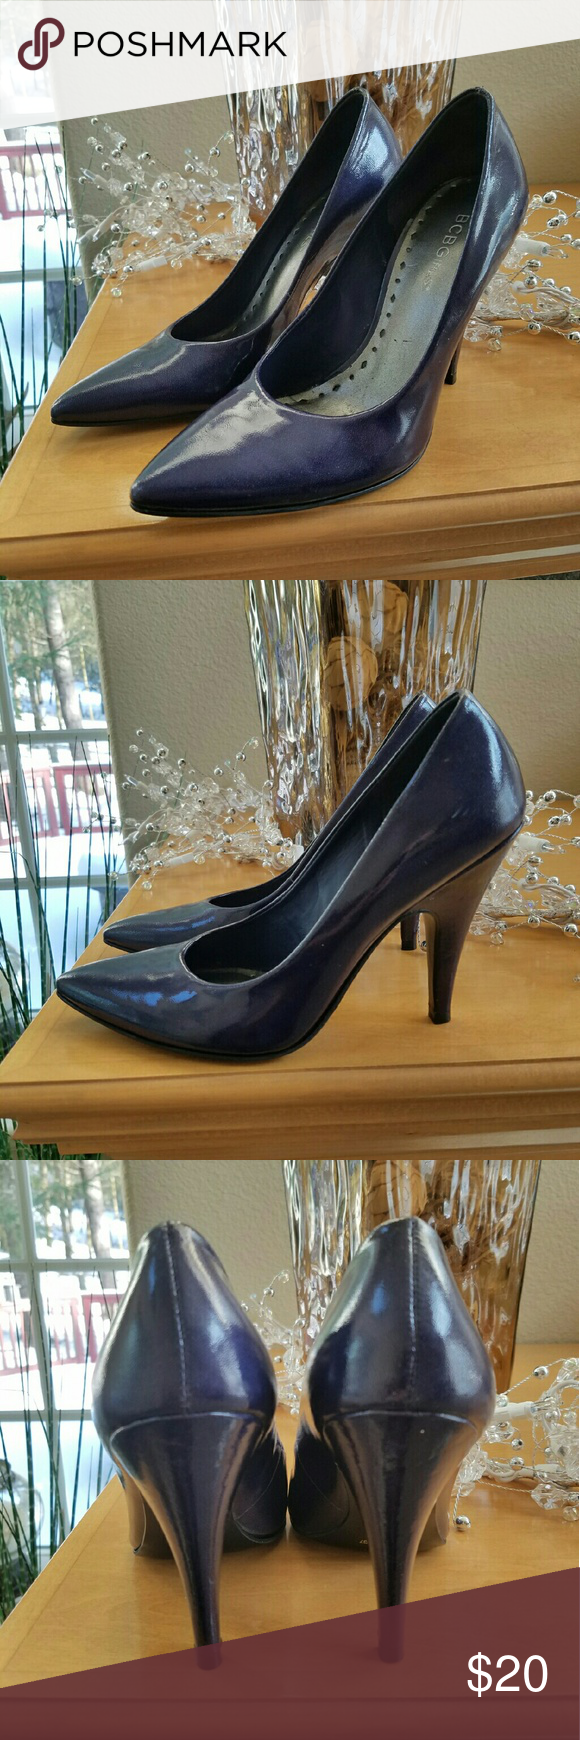 Like New! BCBGirls Purple Patent Heels Size 7 Open to offers!  Only worn a few times. These BCBG Purple Patent leather pumps size 7 are in excellent condition. The uppers and heels have no scuffs and have a 4-inch heel. Retailed for $70 BCBGirls Shoes Heels